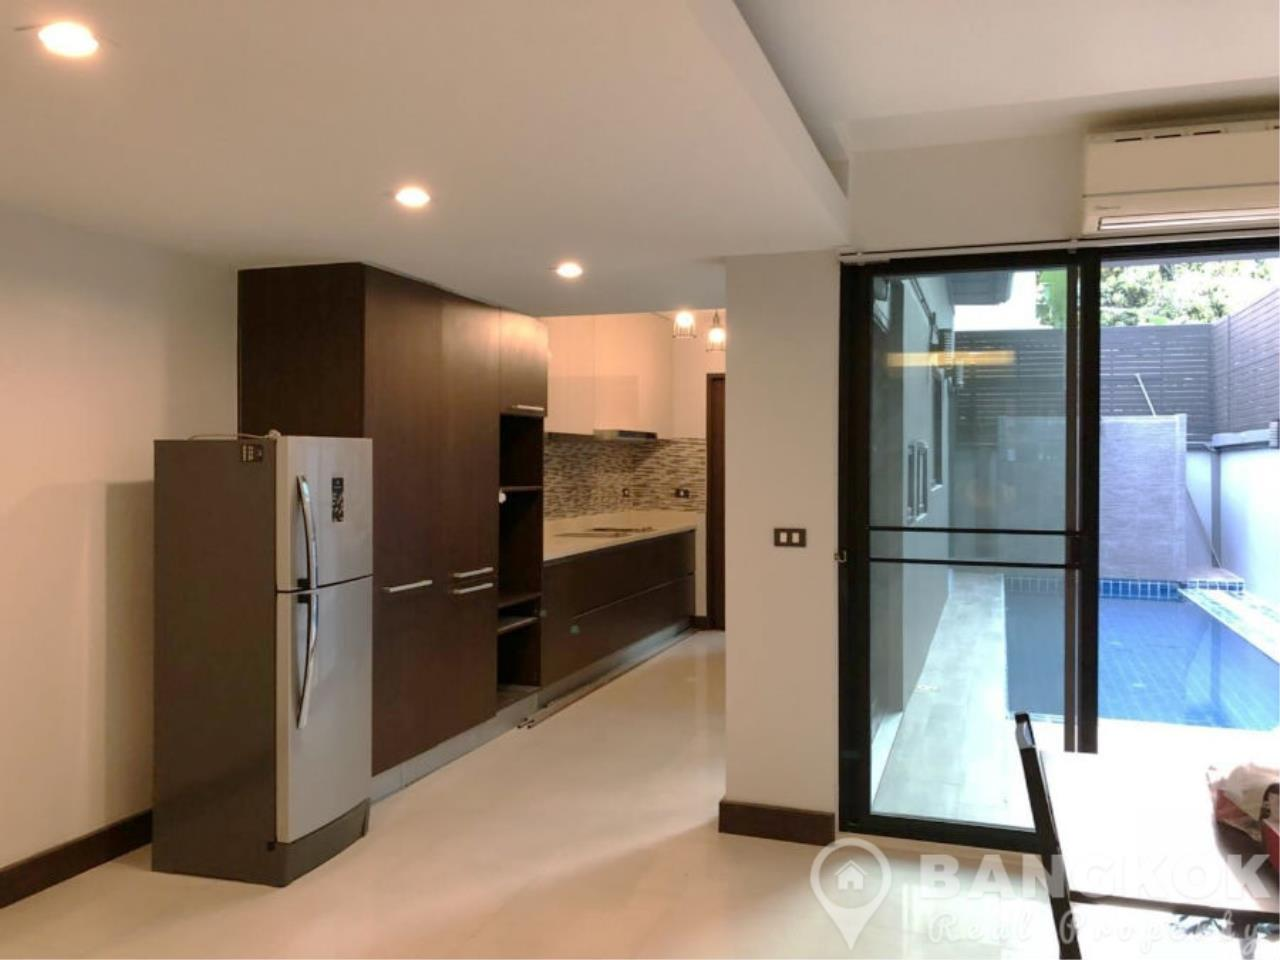 Bangkok Real Property Agency's Modern Detached House in Thonglor 4 Beds with Private Swimming Pool 3